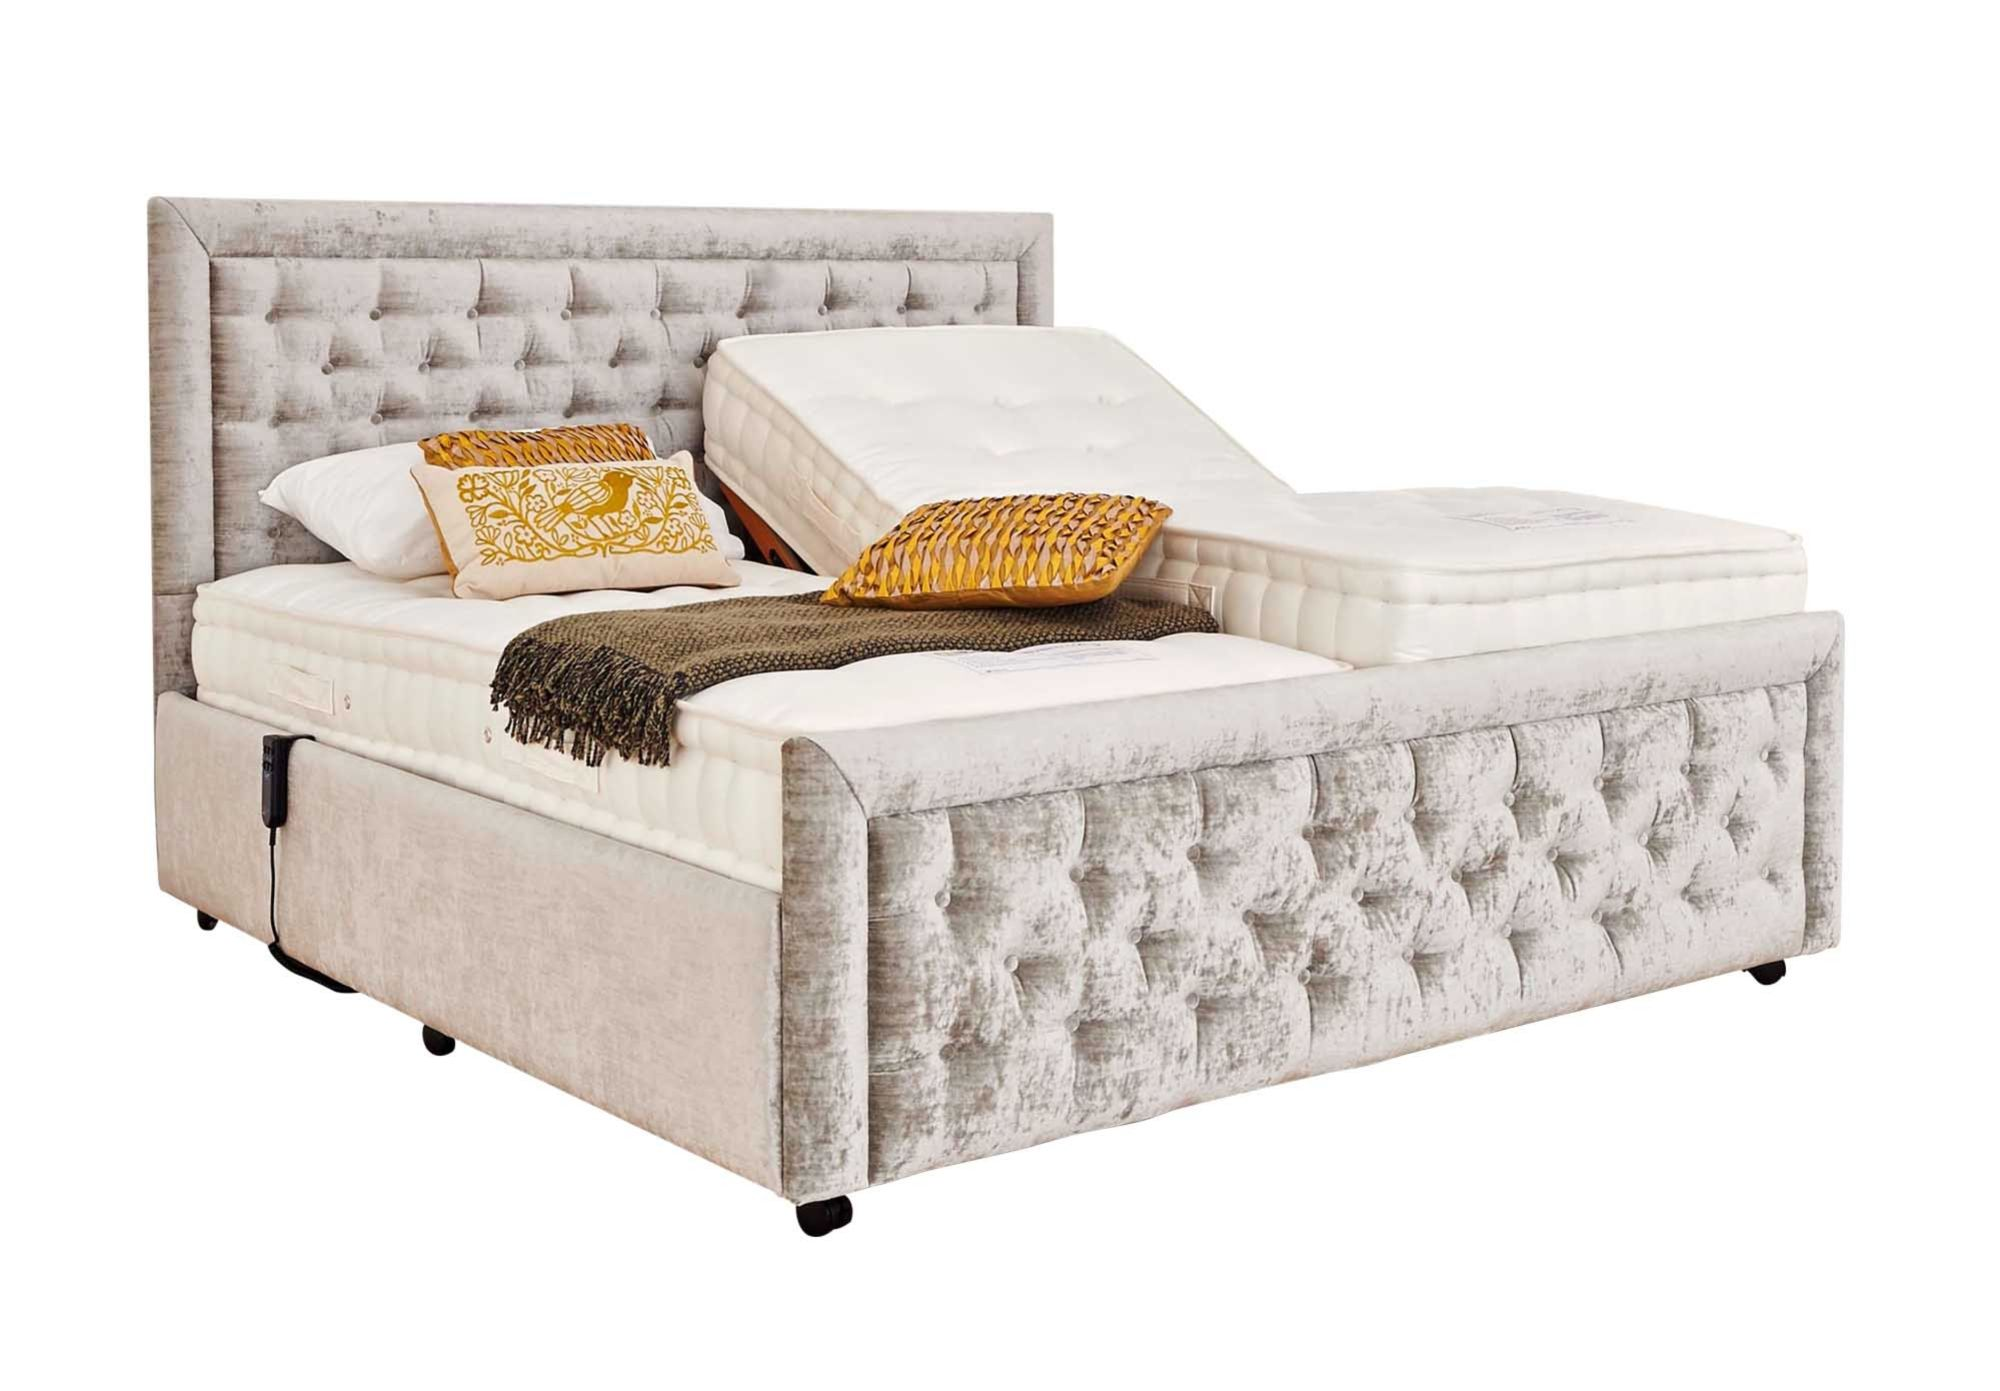 Mibed Claremont King Size Adjustable Bed Furniture Village Mibed Claremont Adjustable Divan